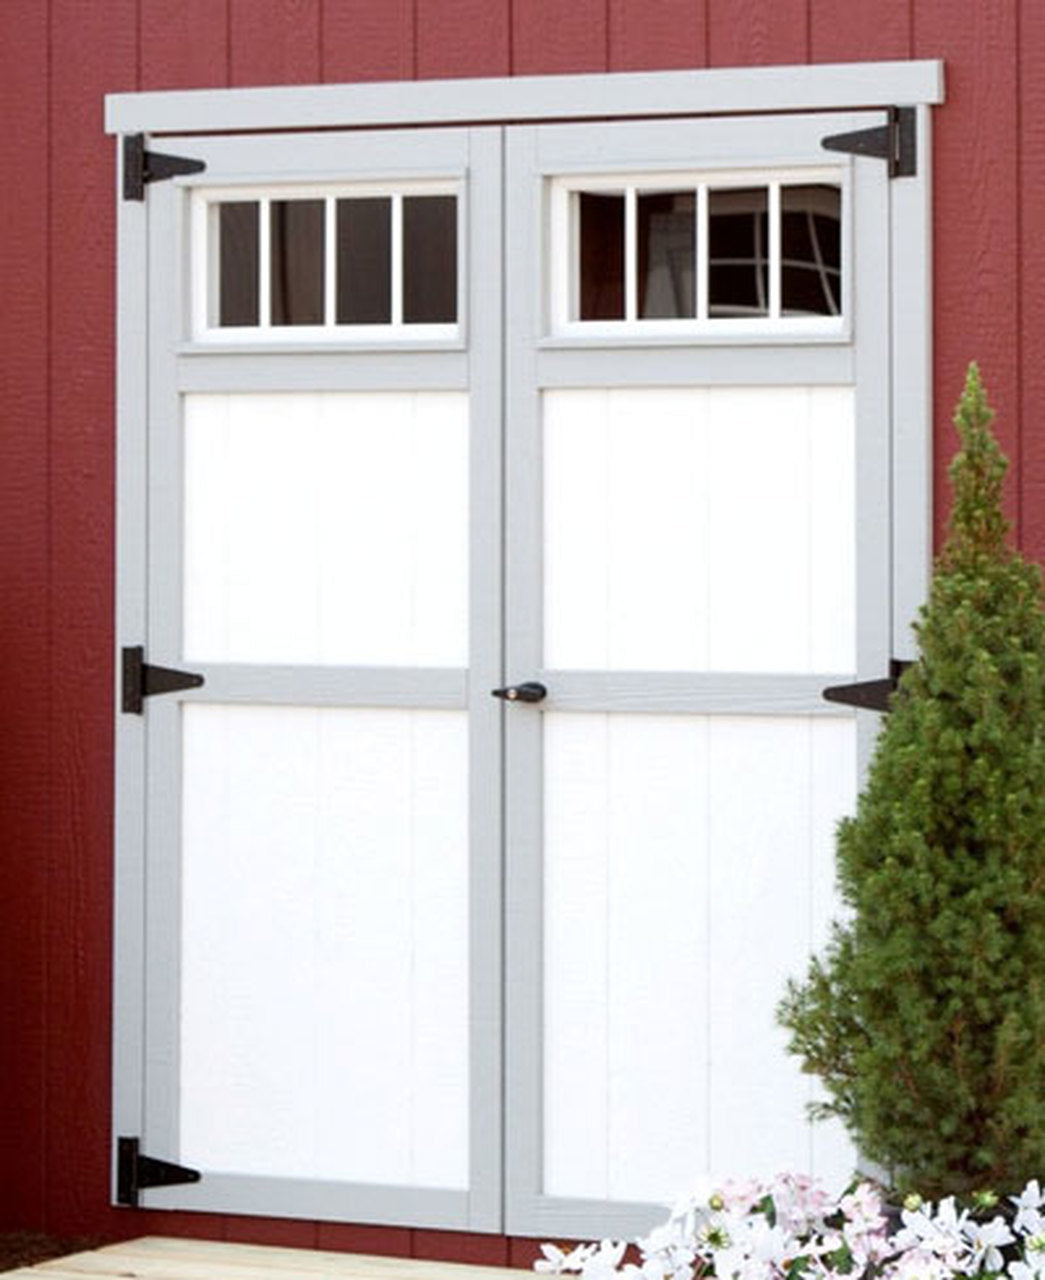 EZ-Fit Transom Windows in 60